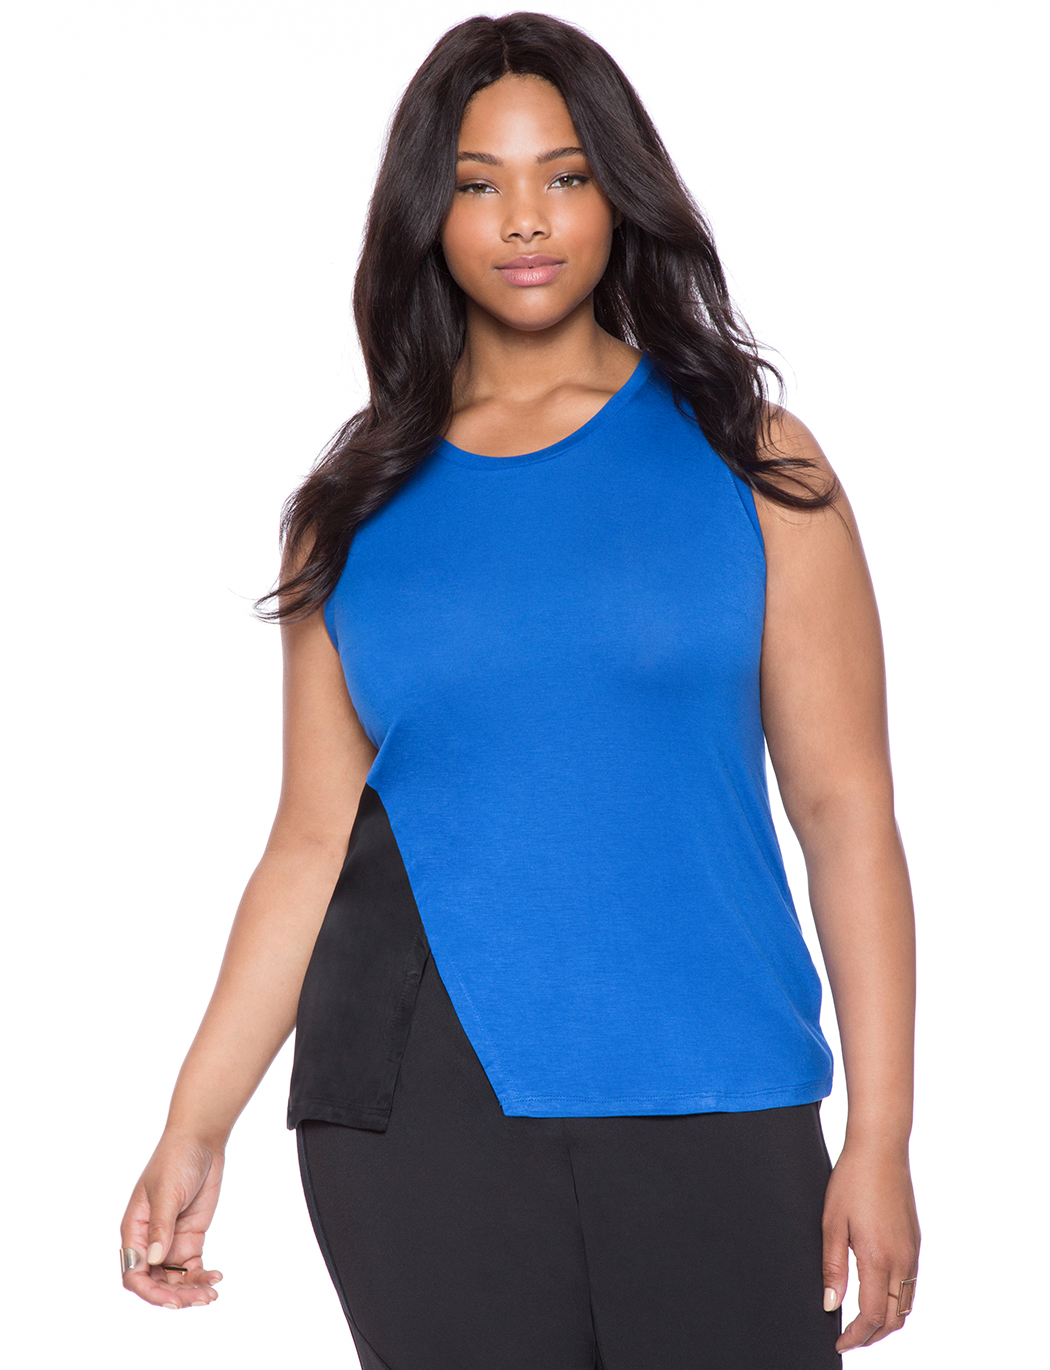 8bc591000a2f9 Asymmetrical Colorblock Top